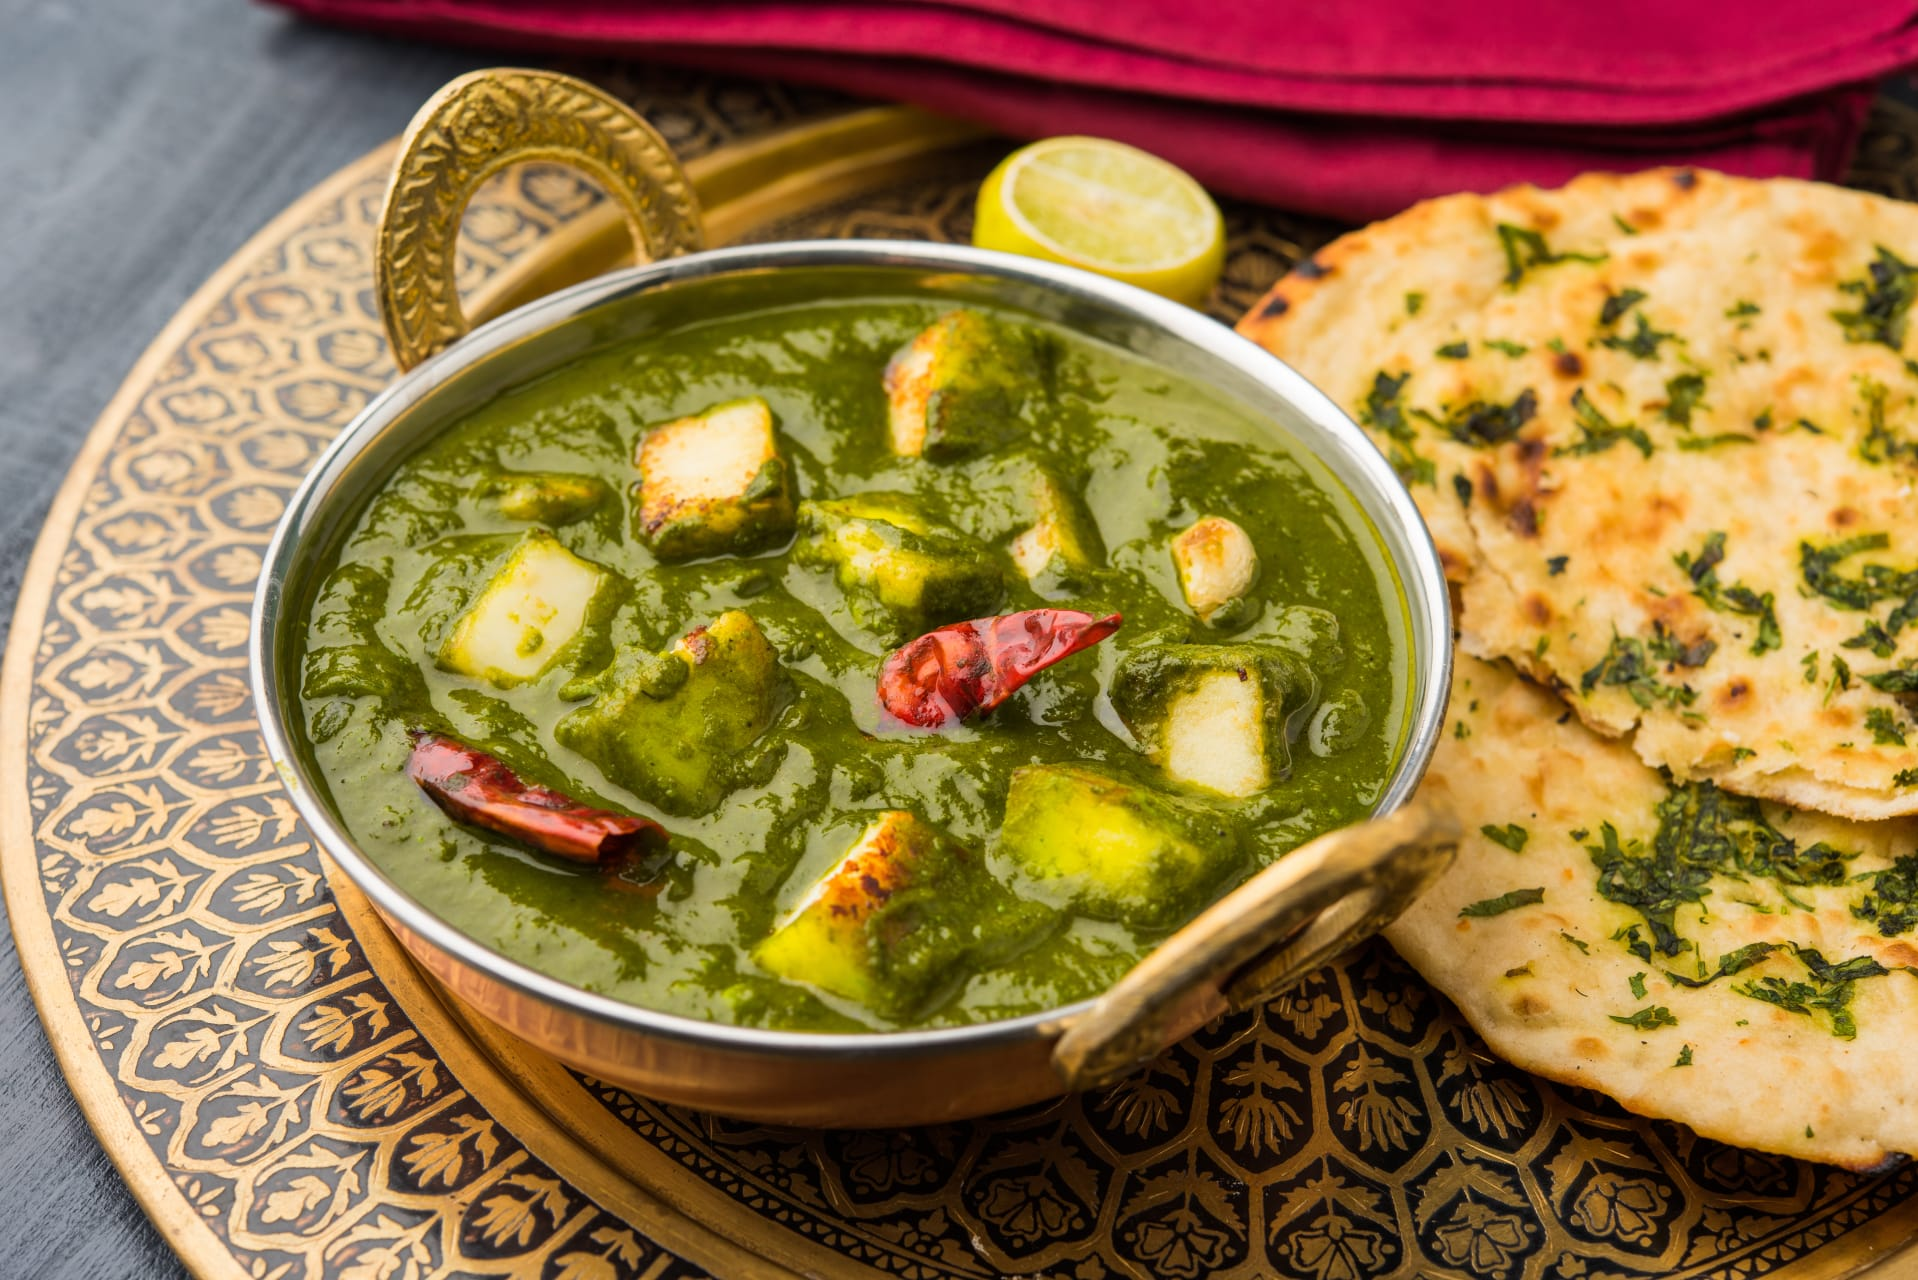 Delhi - Delicious Palak Paneer- Spinach with tofu/cottage cheese/potatoes